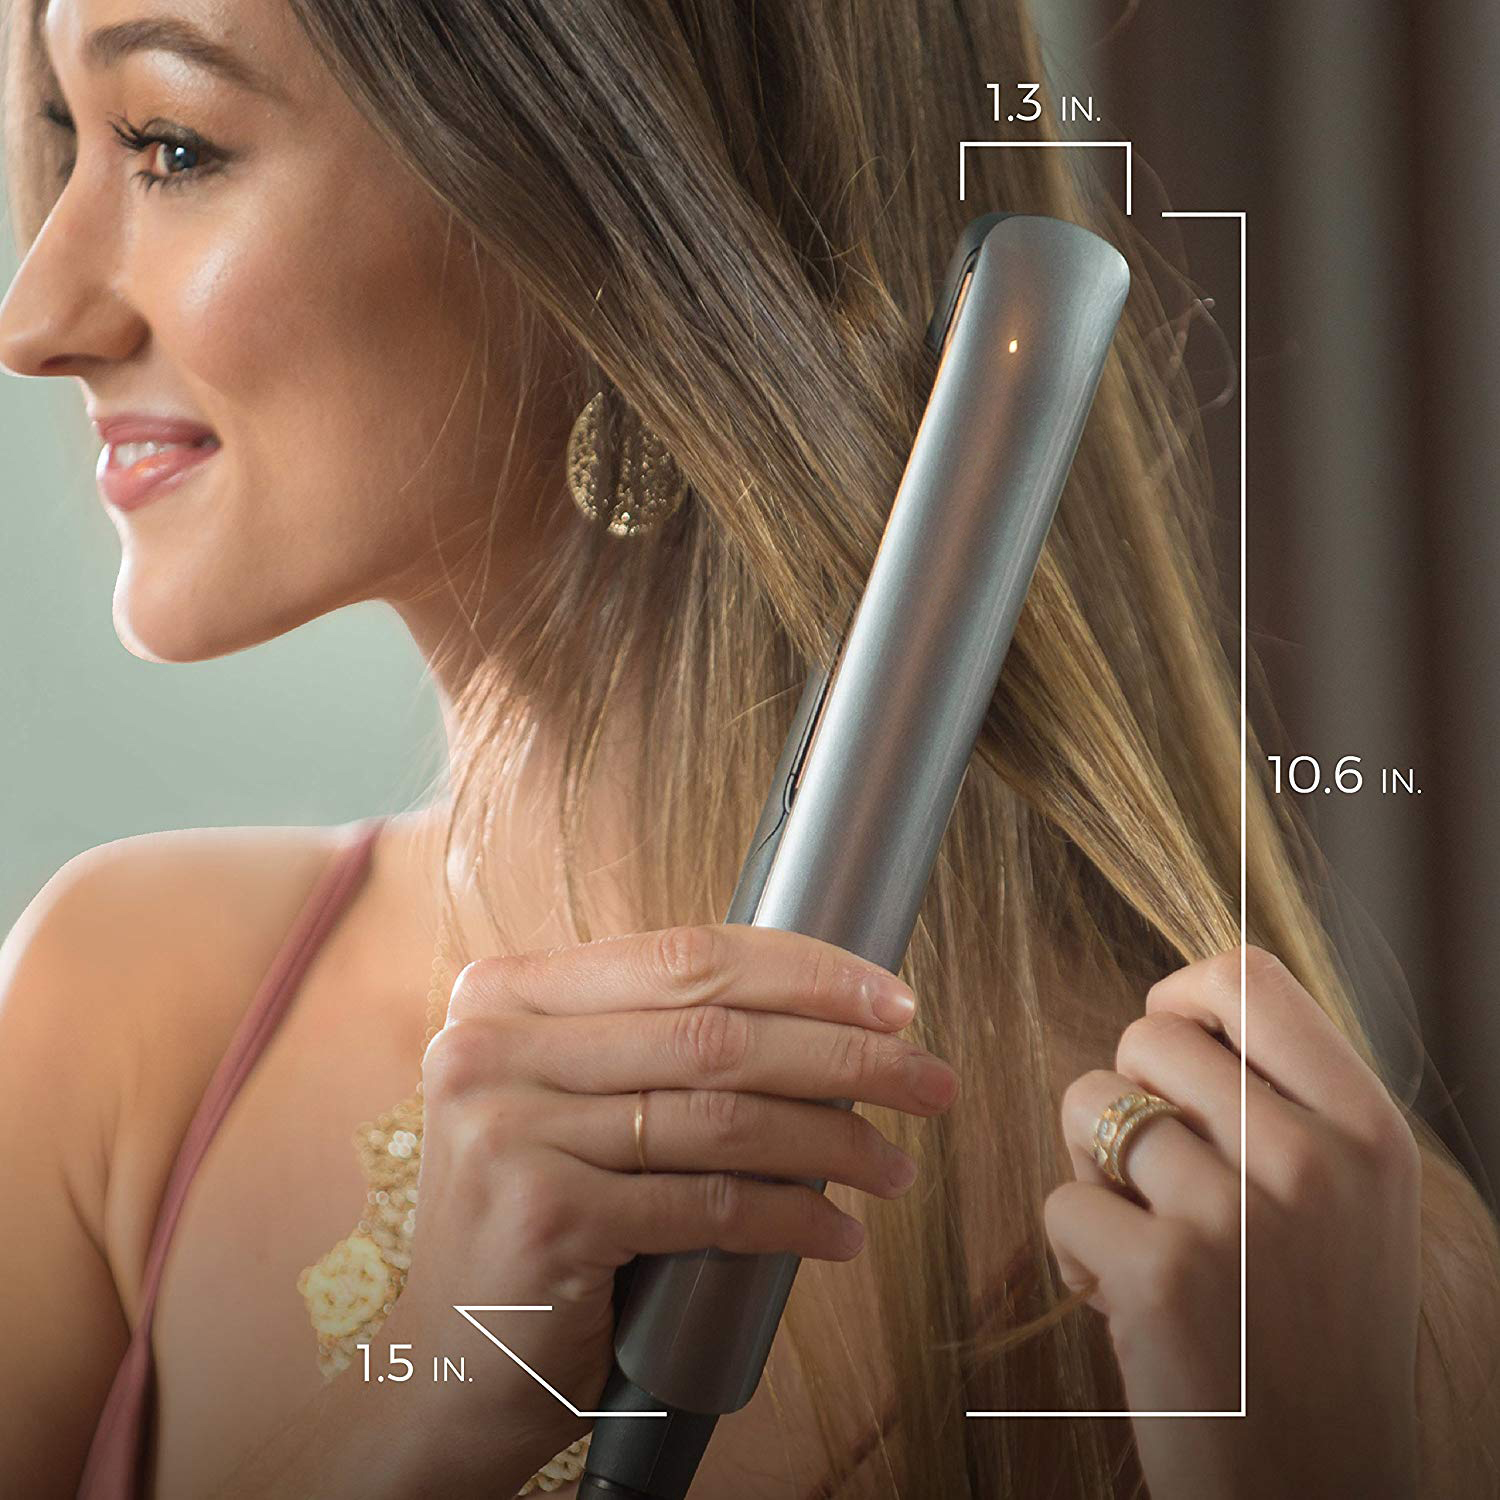 S8590 Keratin Therapy ion Hair Straightener and ceramic plates flat iron with Digital high 450F temperature